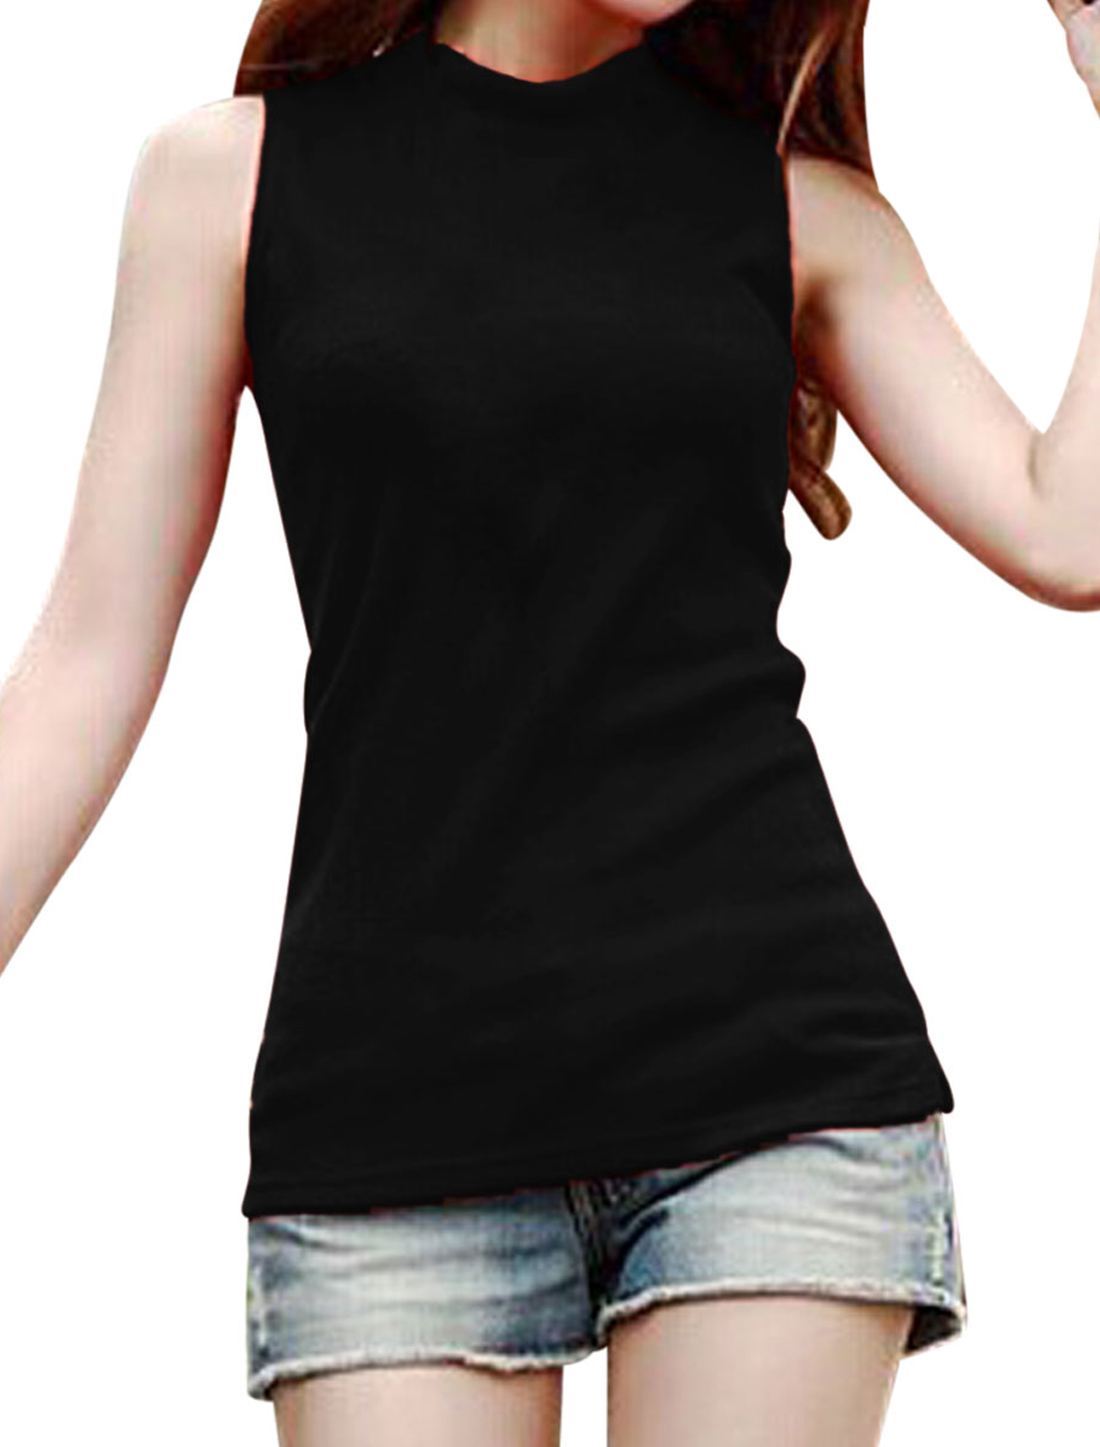 Mock Neck Sleeveless Casual Knitted Top for Women Black M